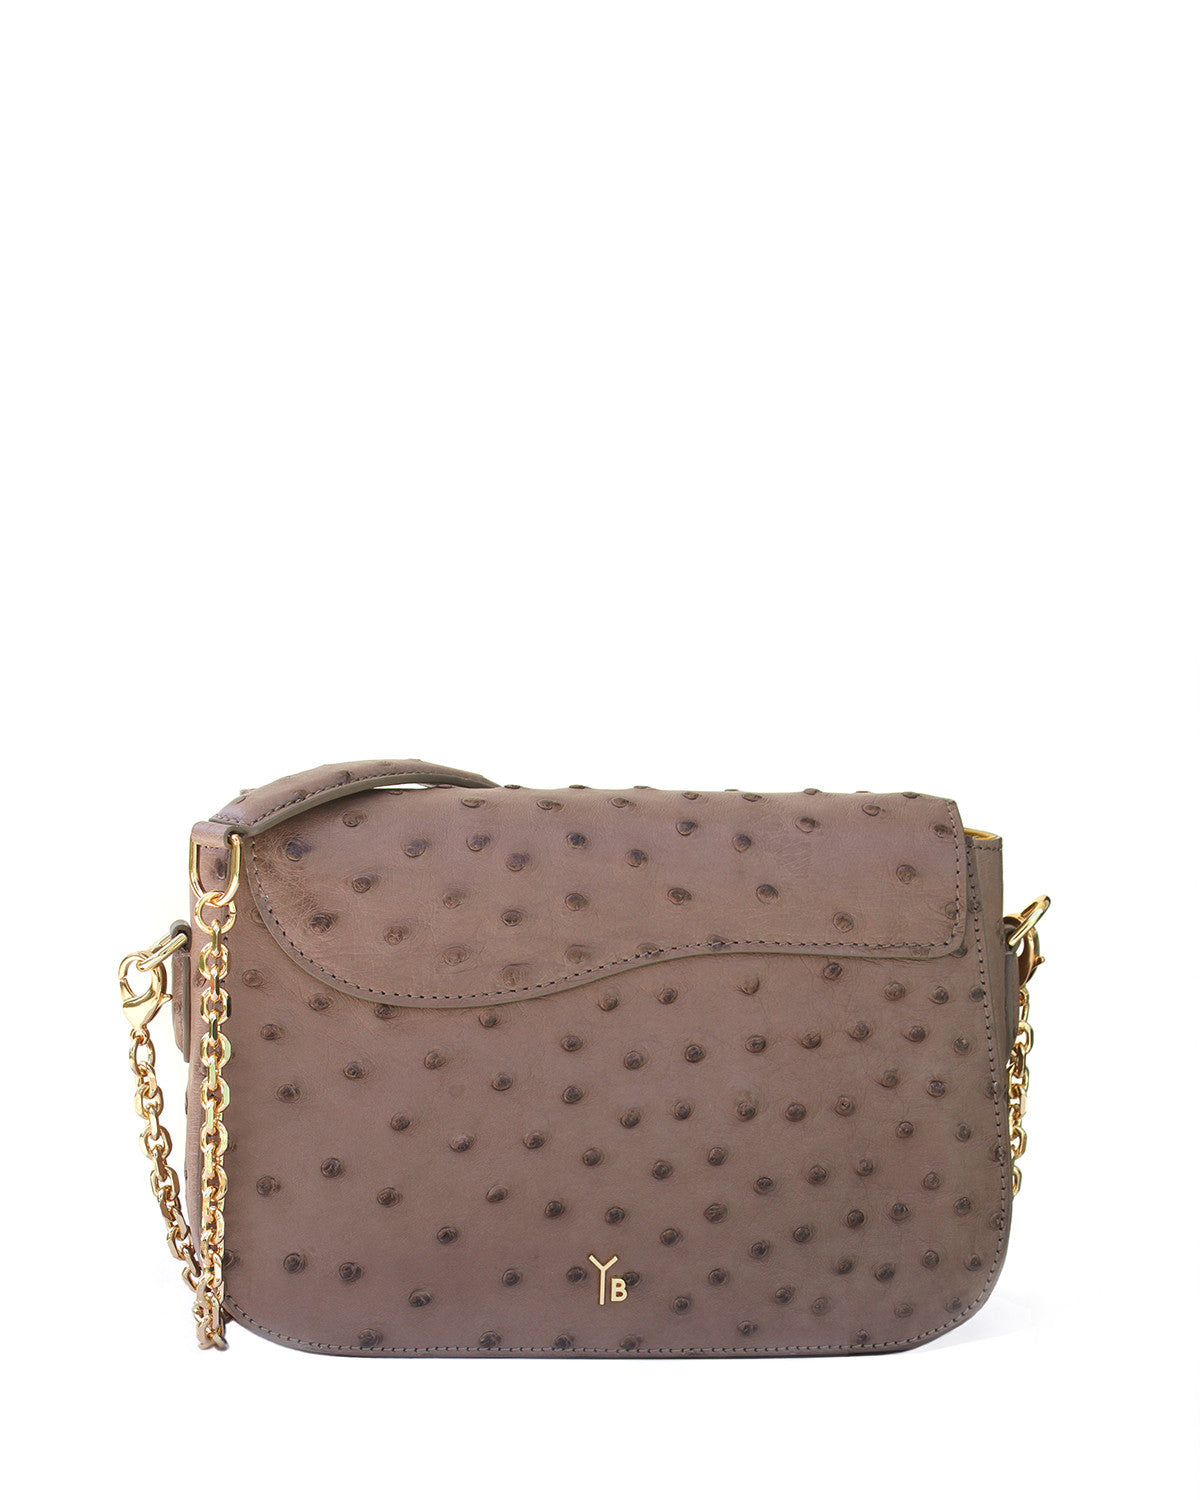 Back View of the Edgar Crossbody Shoulder Bag in Light Brown Ostrich with Gold Chain